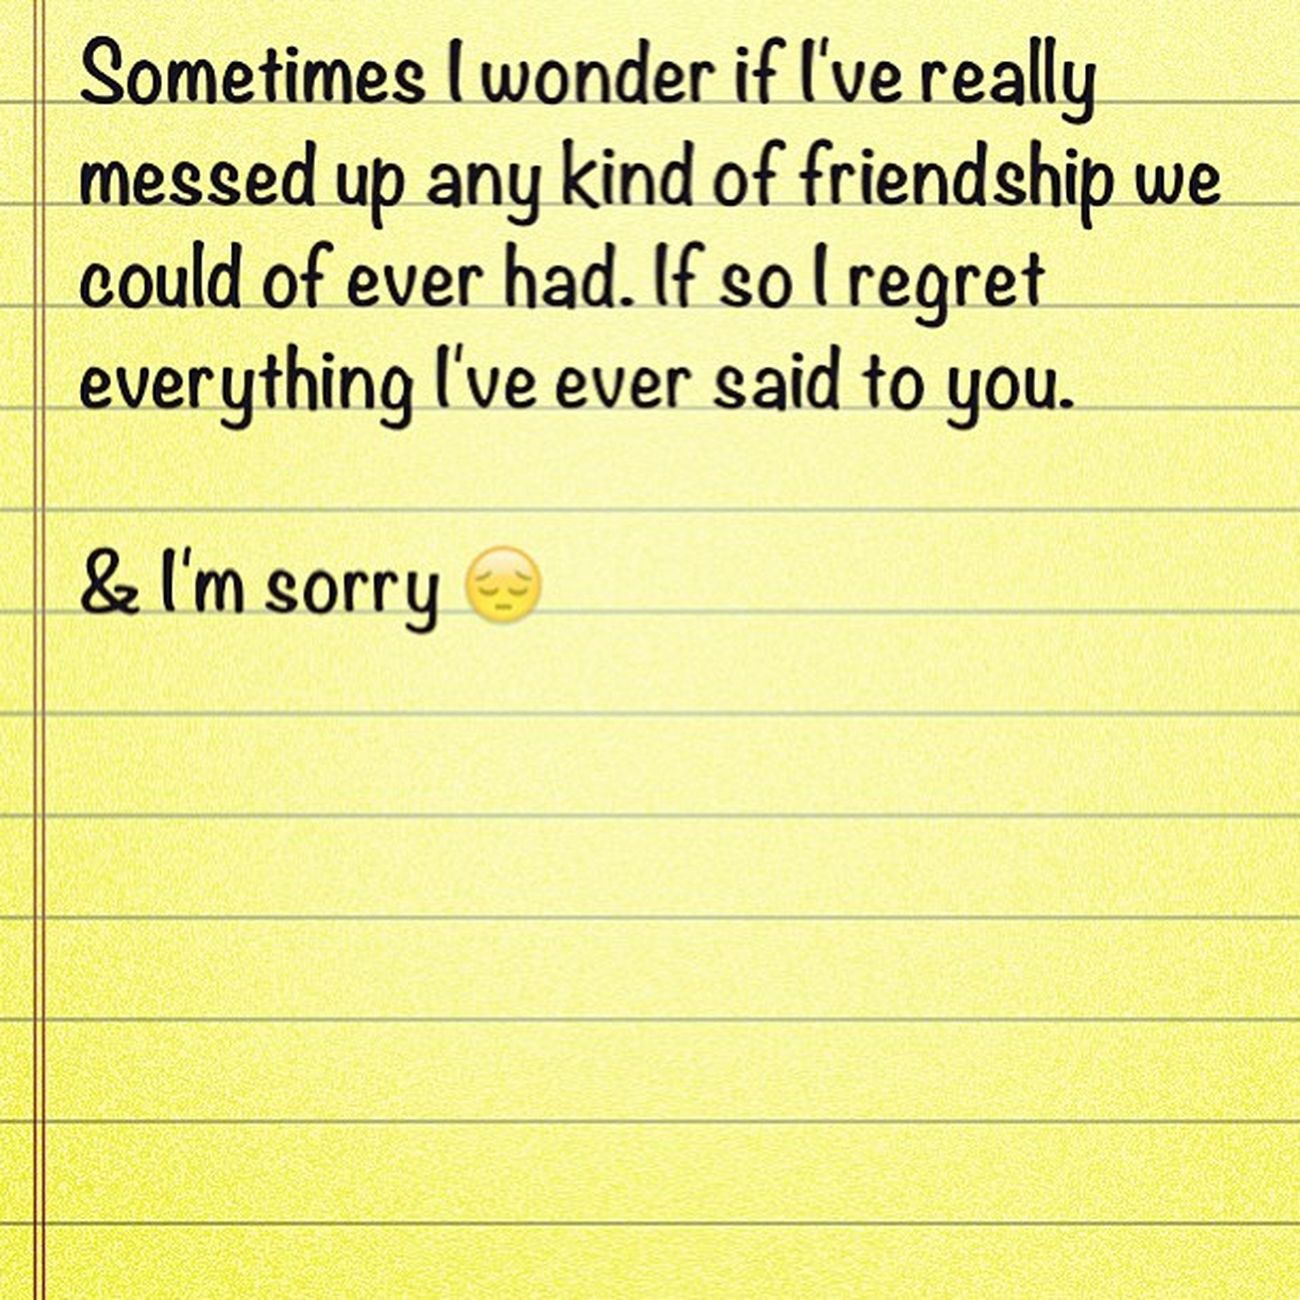 Pretty much.. ImSorry Isaystupidshit Mybad Feelbad ugh regrets sorry forgiveme? please friendship ruined damn goodjob..